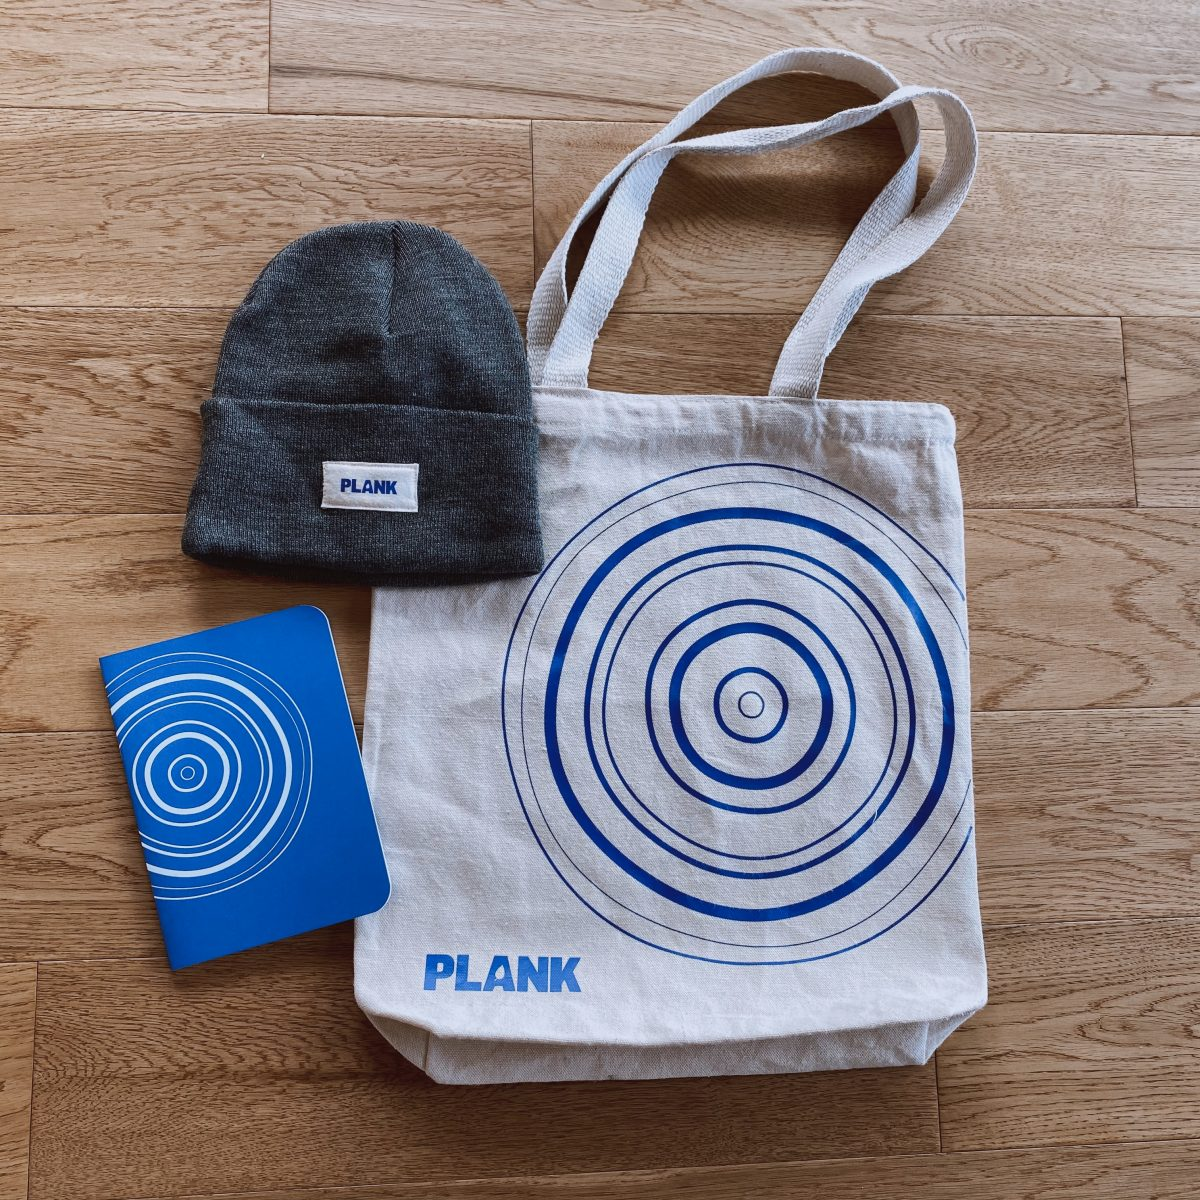 A cream tote and notebook with a blue circle design, and a beanie with our logo all laid down on a wood floor